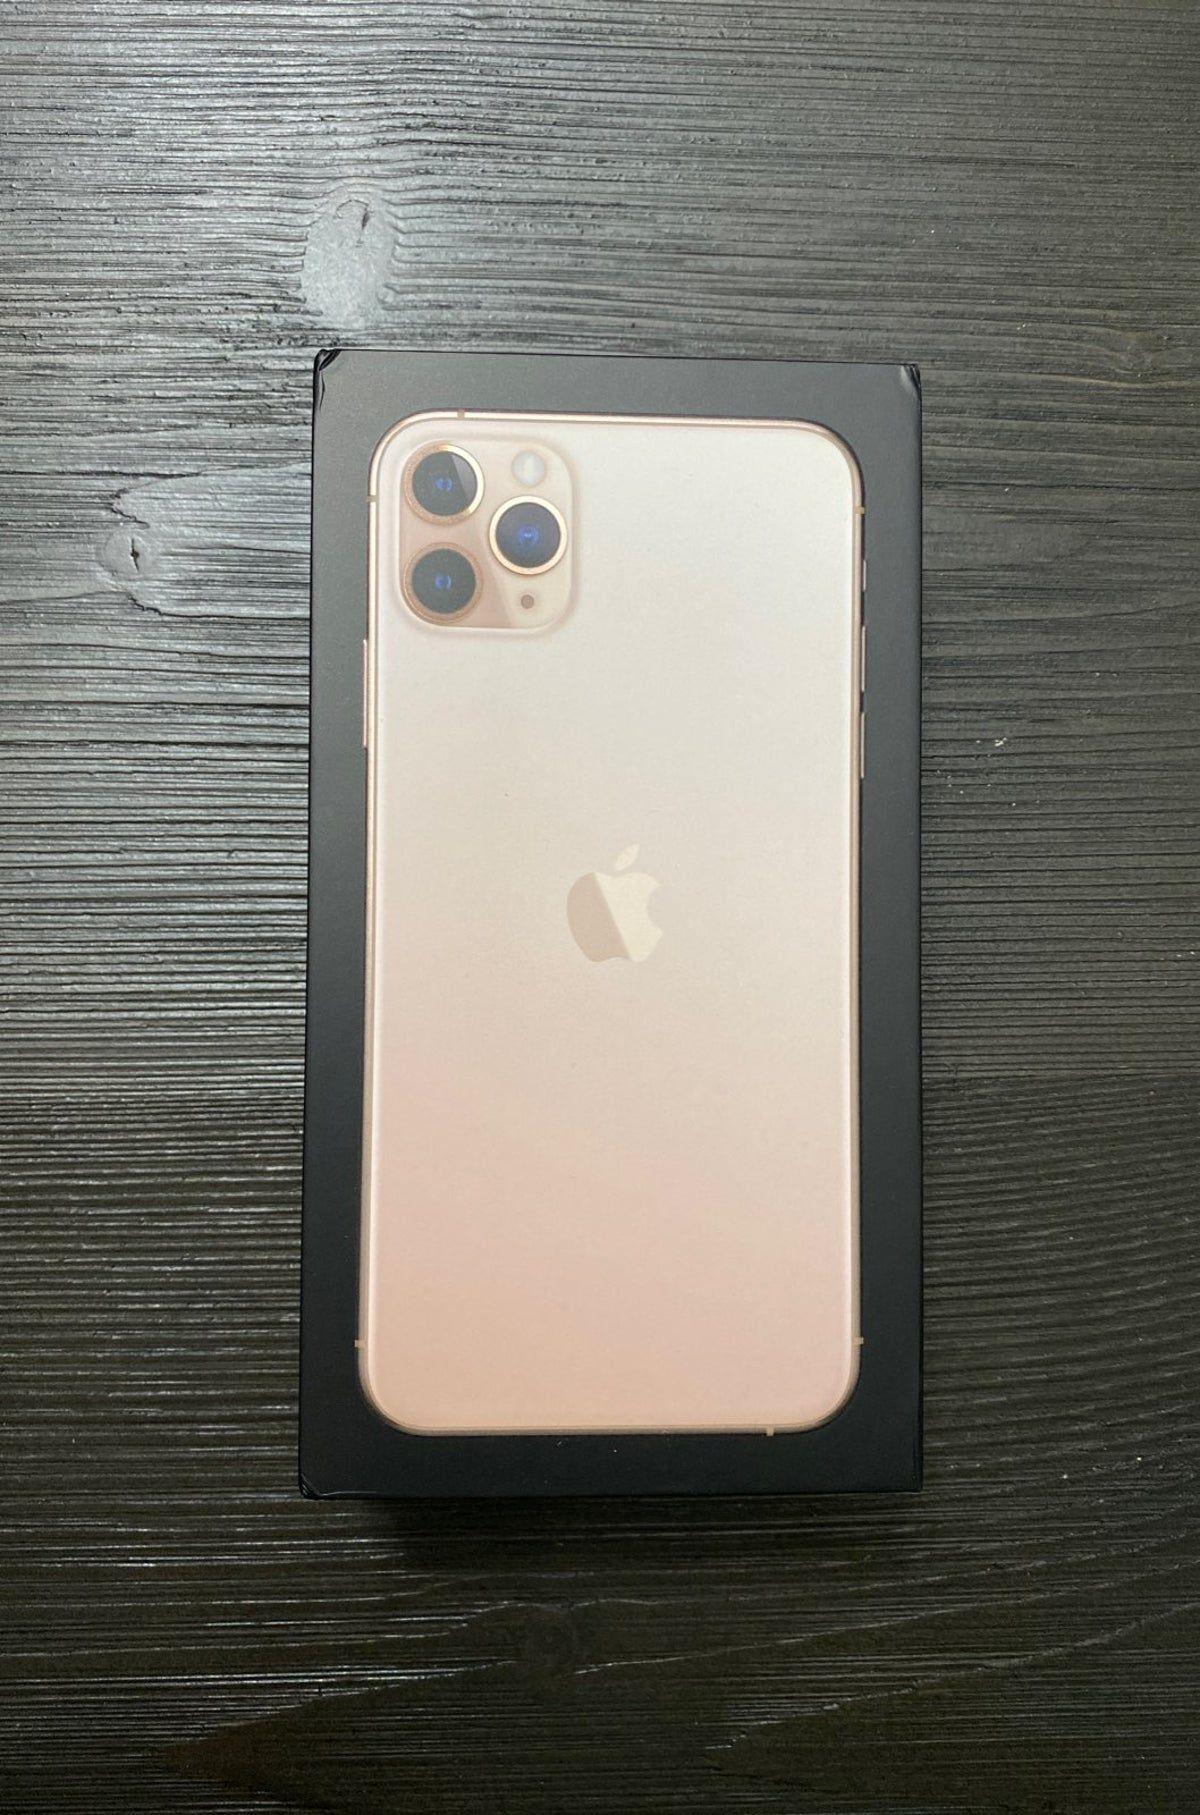 Iphone 11 Pro Max Gold Box Only Iphone Iphone 11 Apple Products